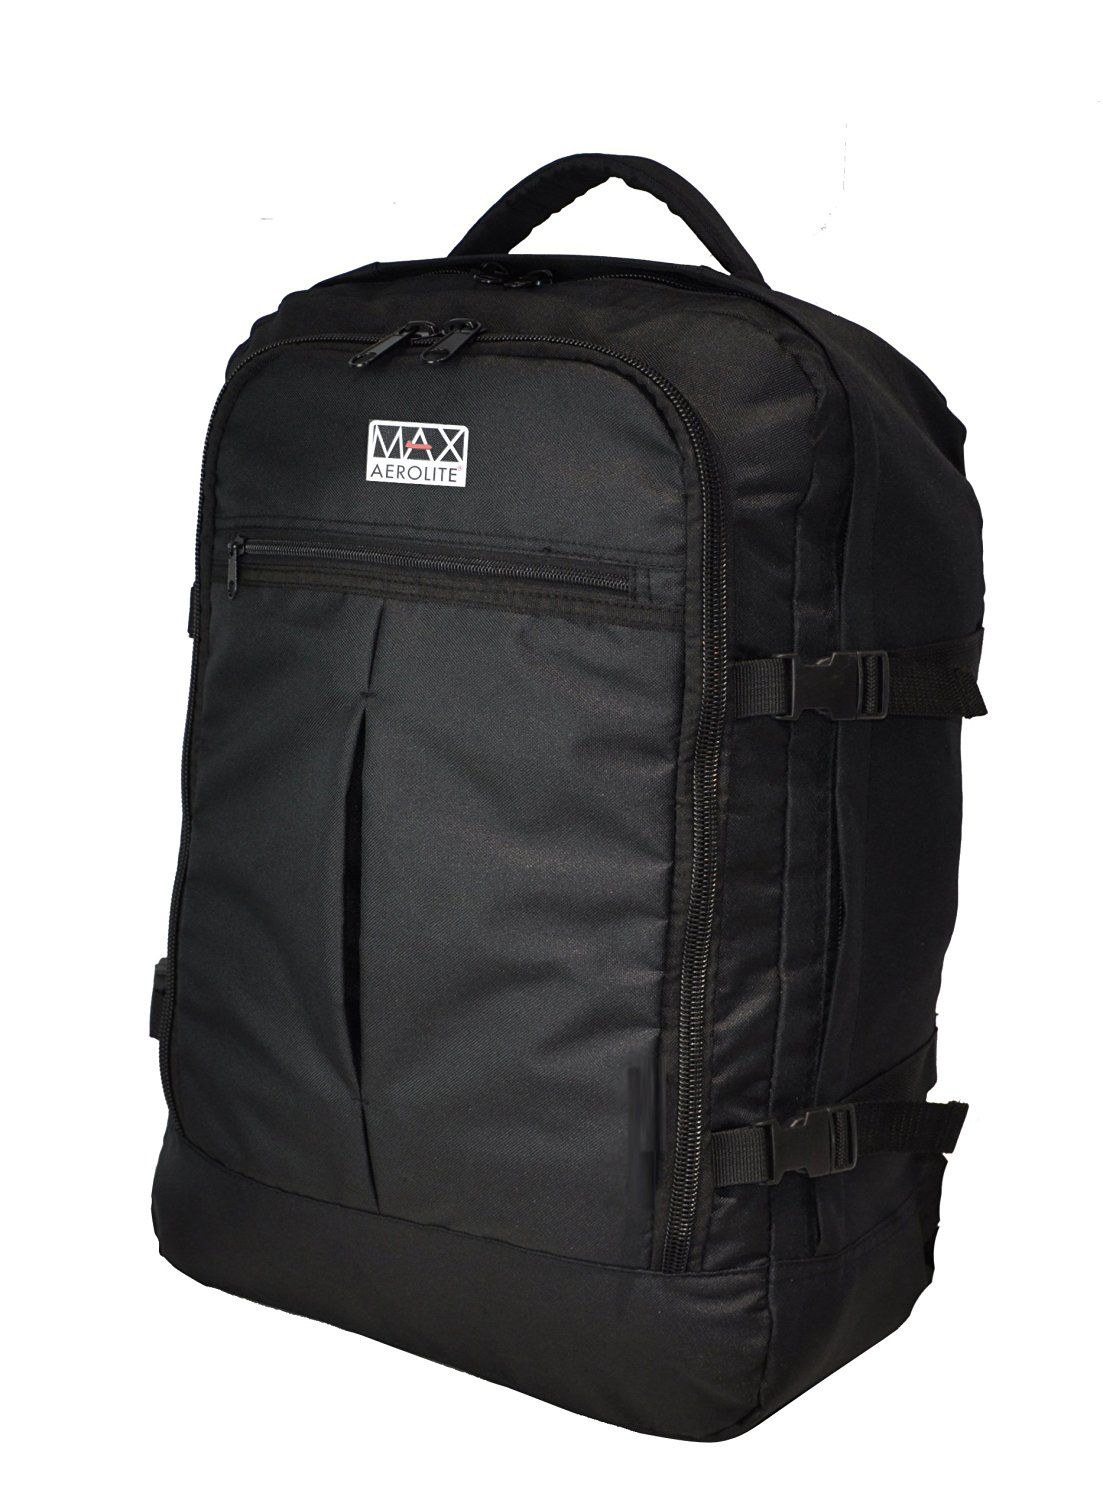 Aerolite Max Backpack 55x40x20cm Ryanair Approved Cabin Hand Luggage Carry  on (Black)  Amazon.co.uk  Luggage 8ee55cce3d381